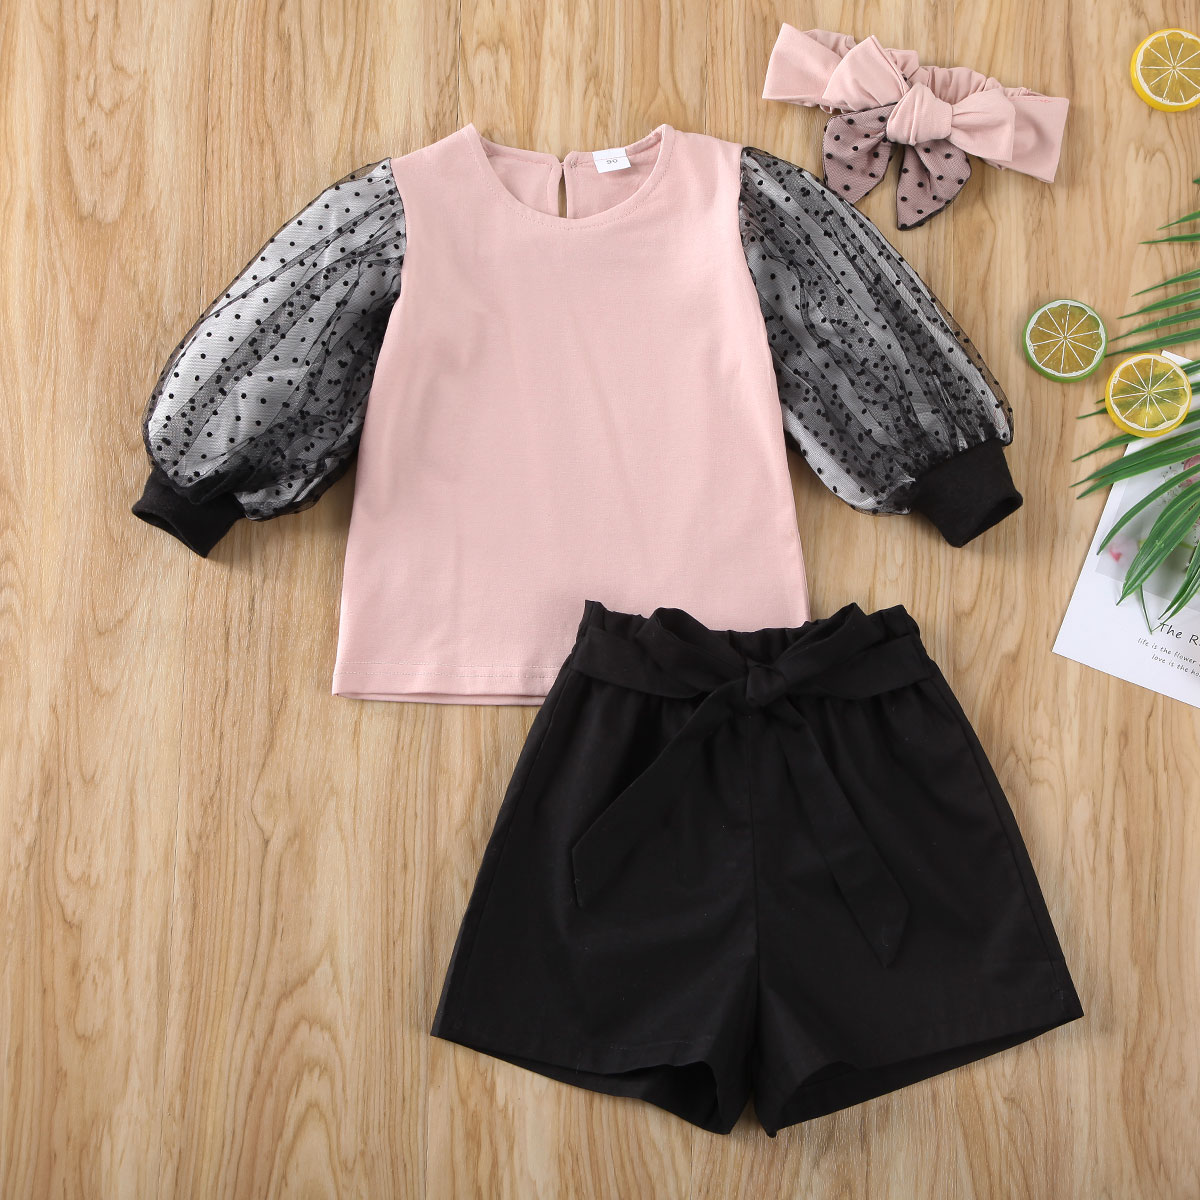 Pudcoco Newest Fashion Toddler Baby Girl Clothes Lace Long Sleeve T-Shirt Tops Short Pants Headband 3Pcs Outfits Cotton Clothes